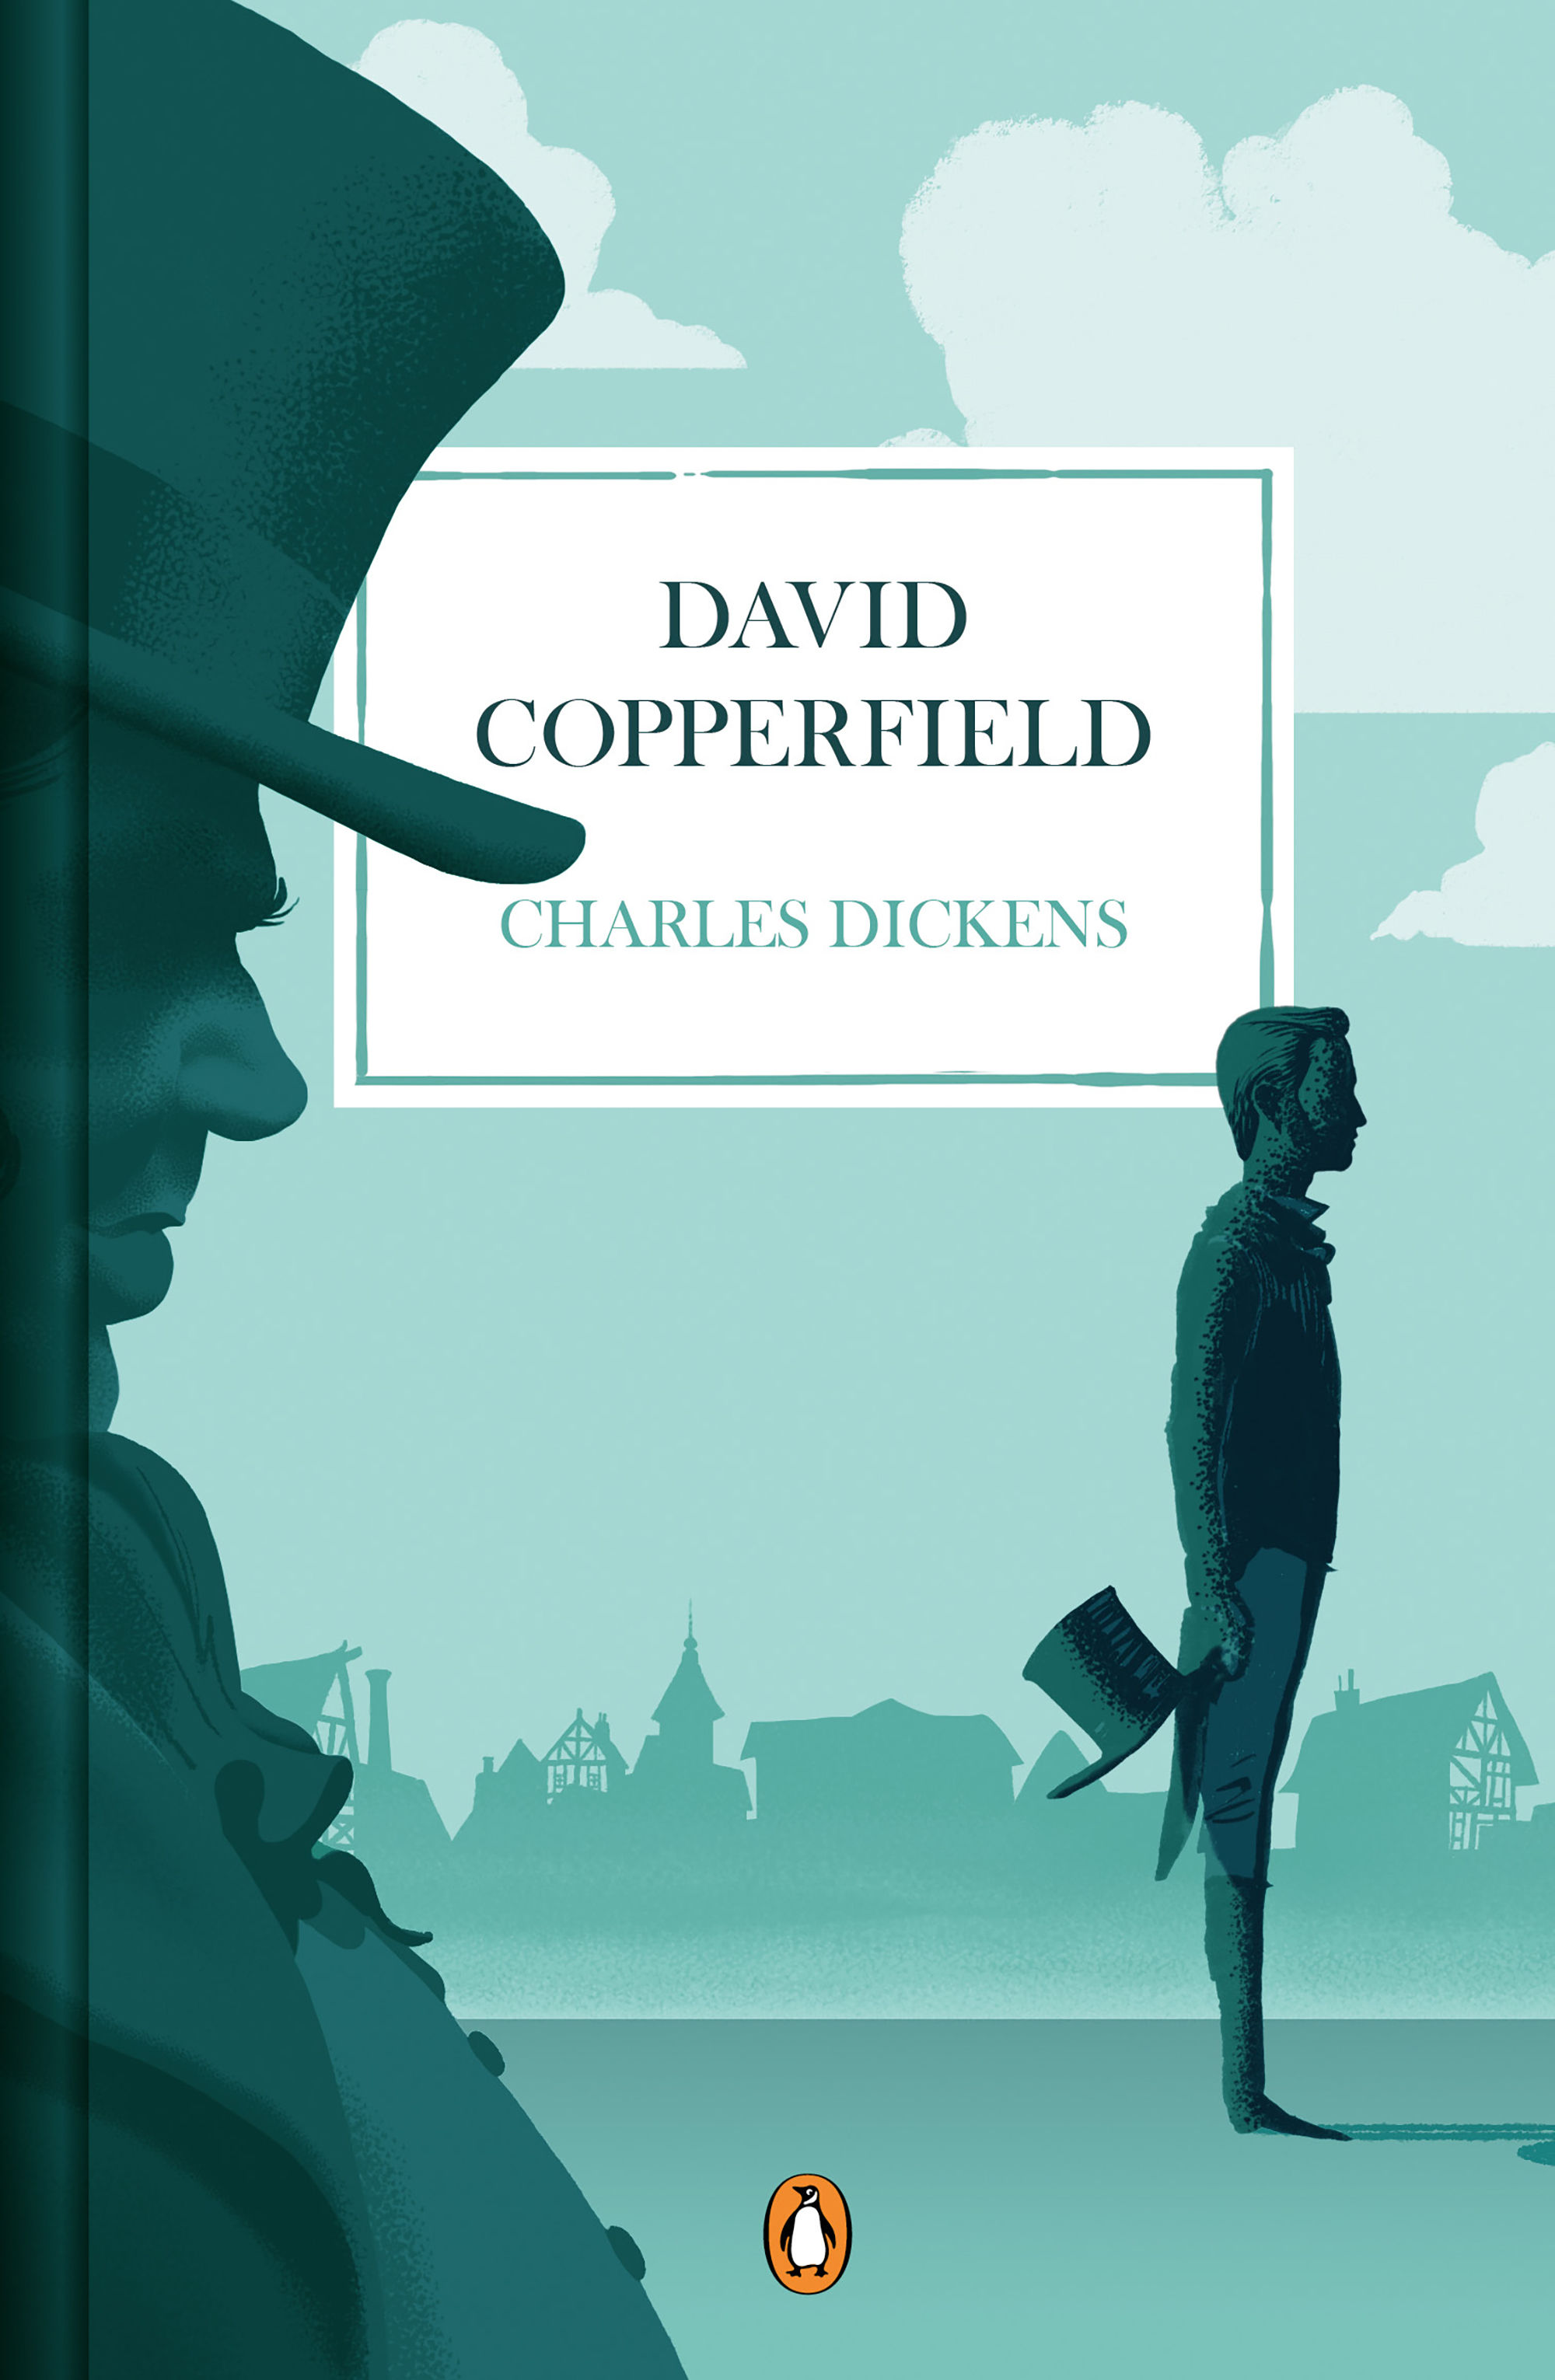 DAVID COPPERFIELD (TD)